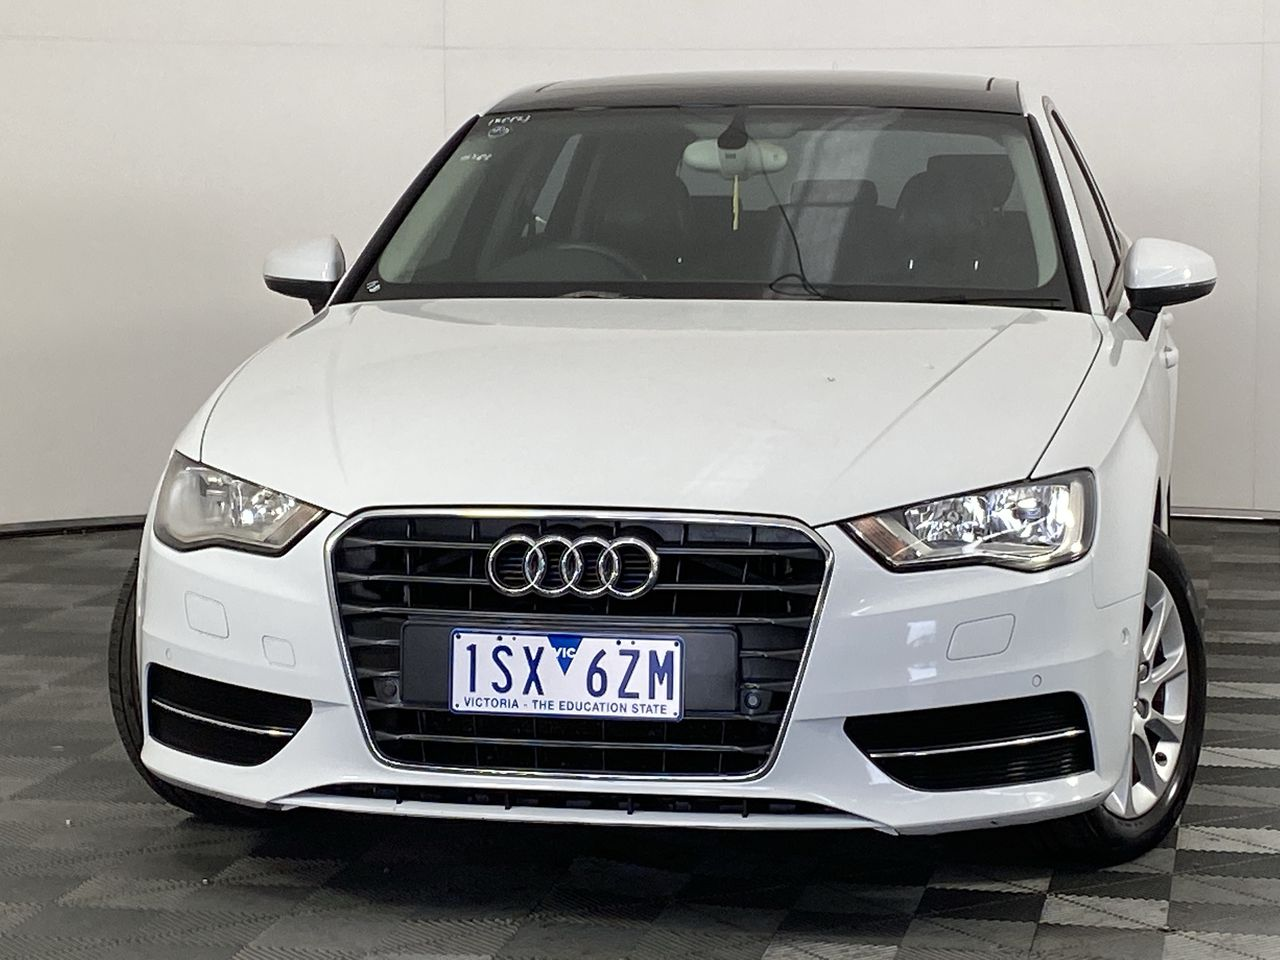 2013 Audi A3 1.4 TFSI ATTRACTION 8V Automatic Hatchback